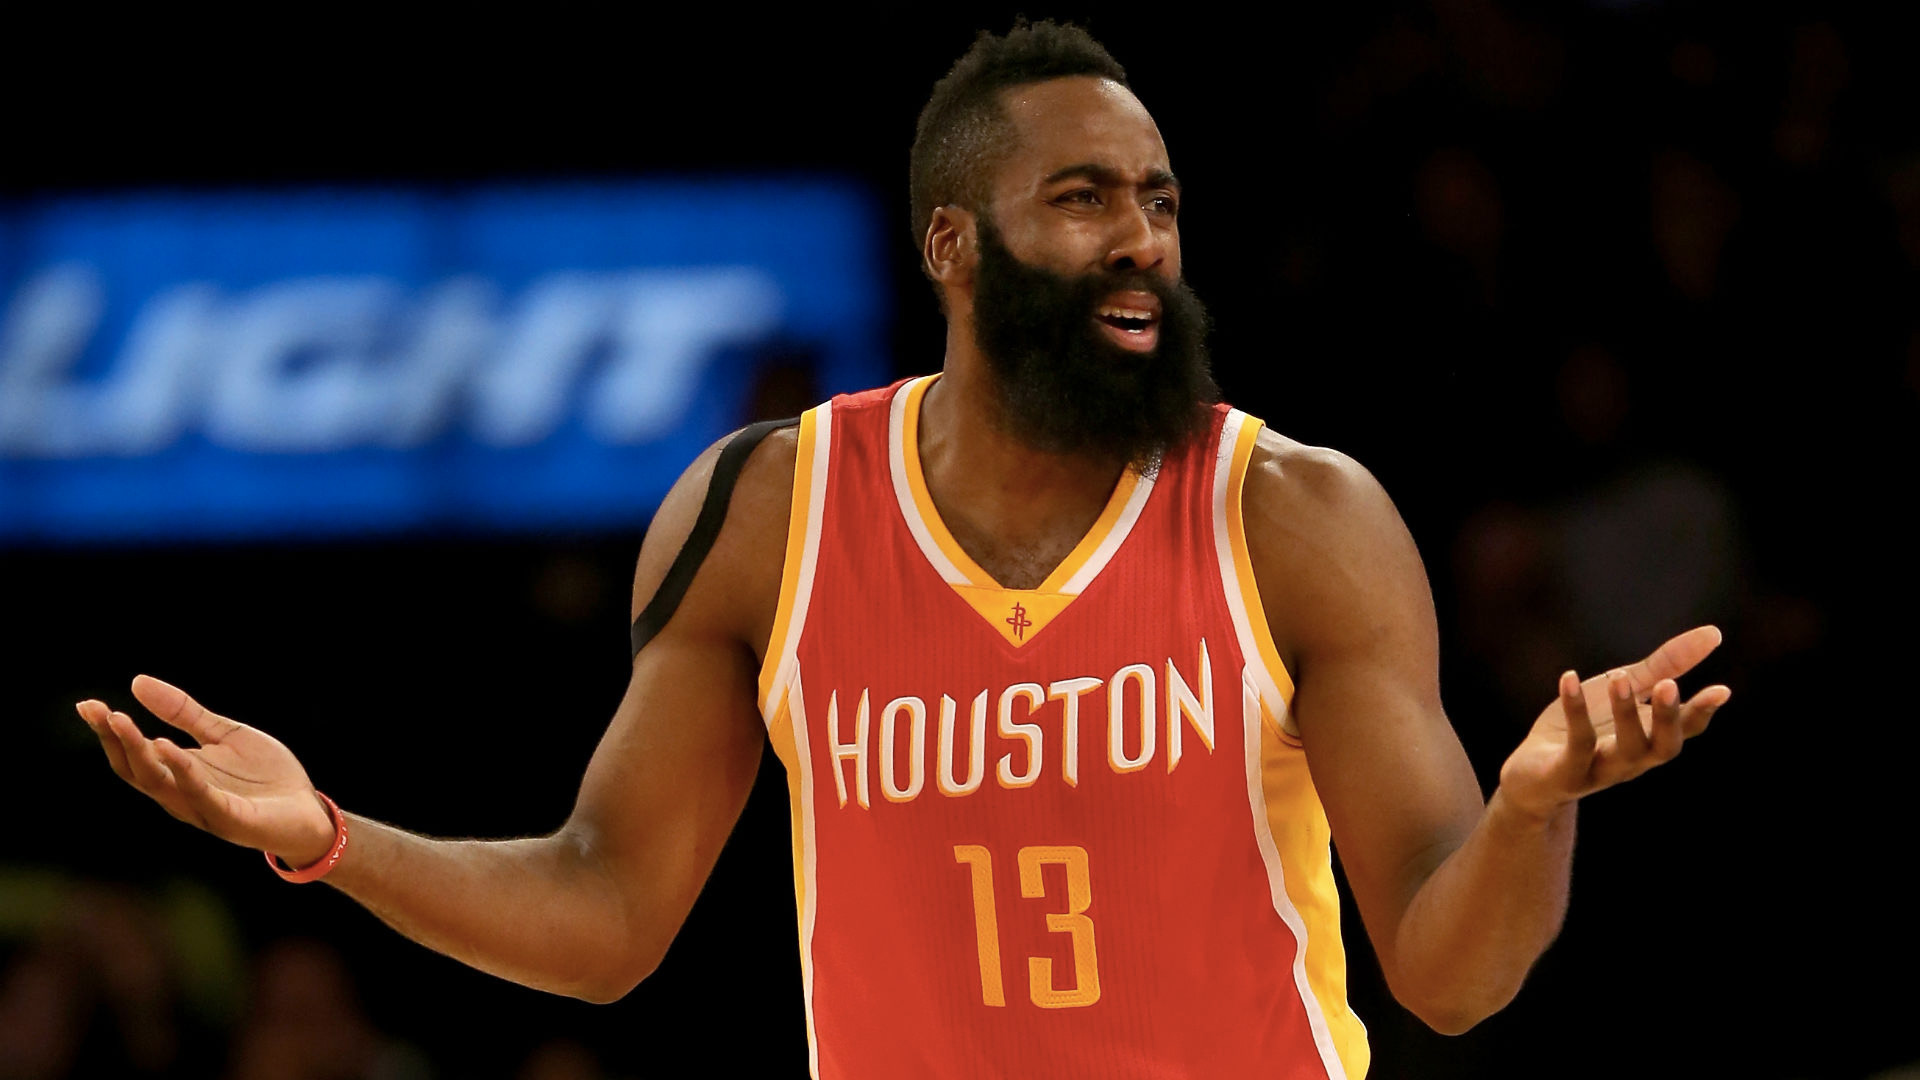 James Harden Wallpaper Hd James Harden Wallpapers High Resolution And Quality Download